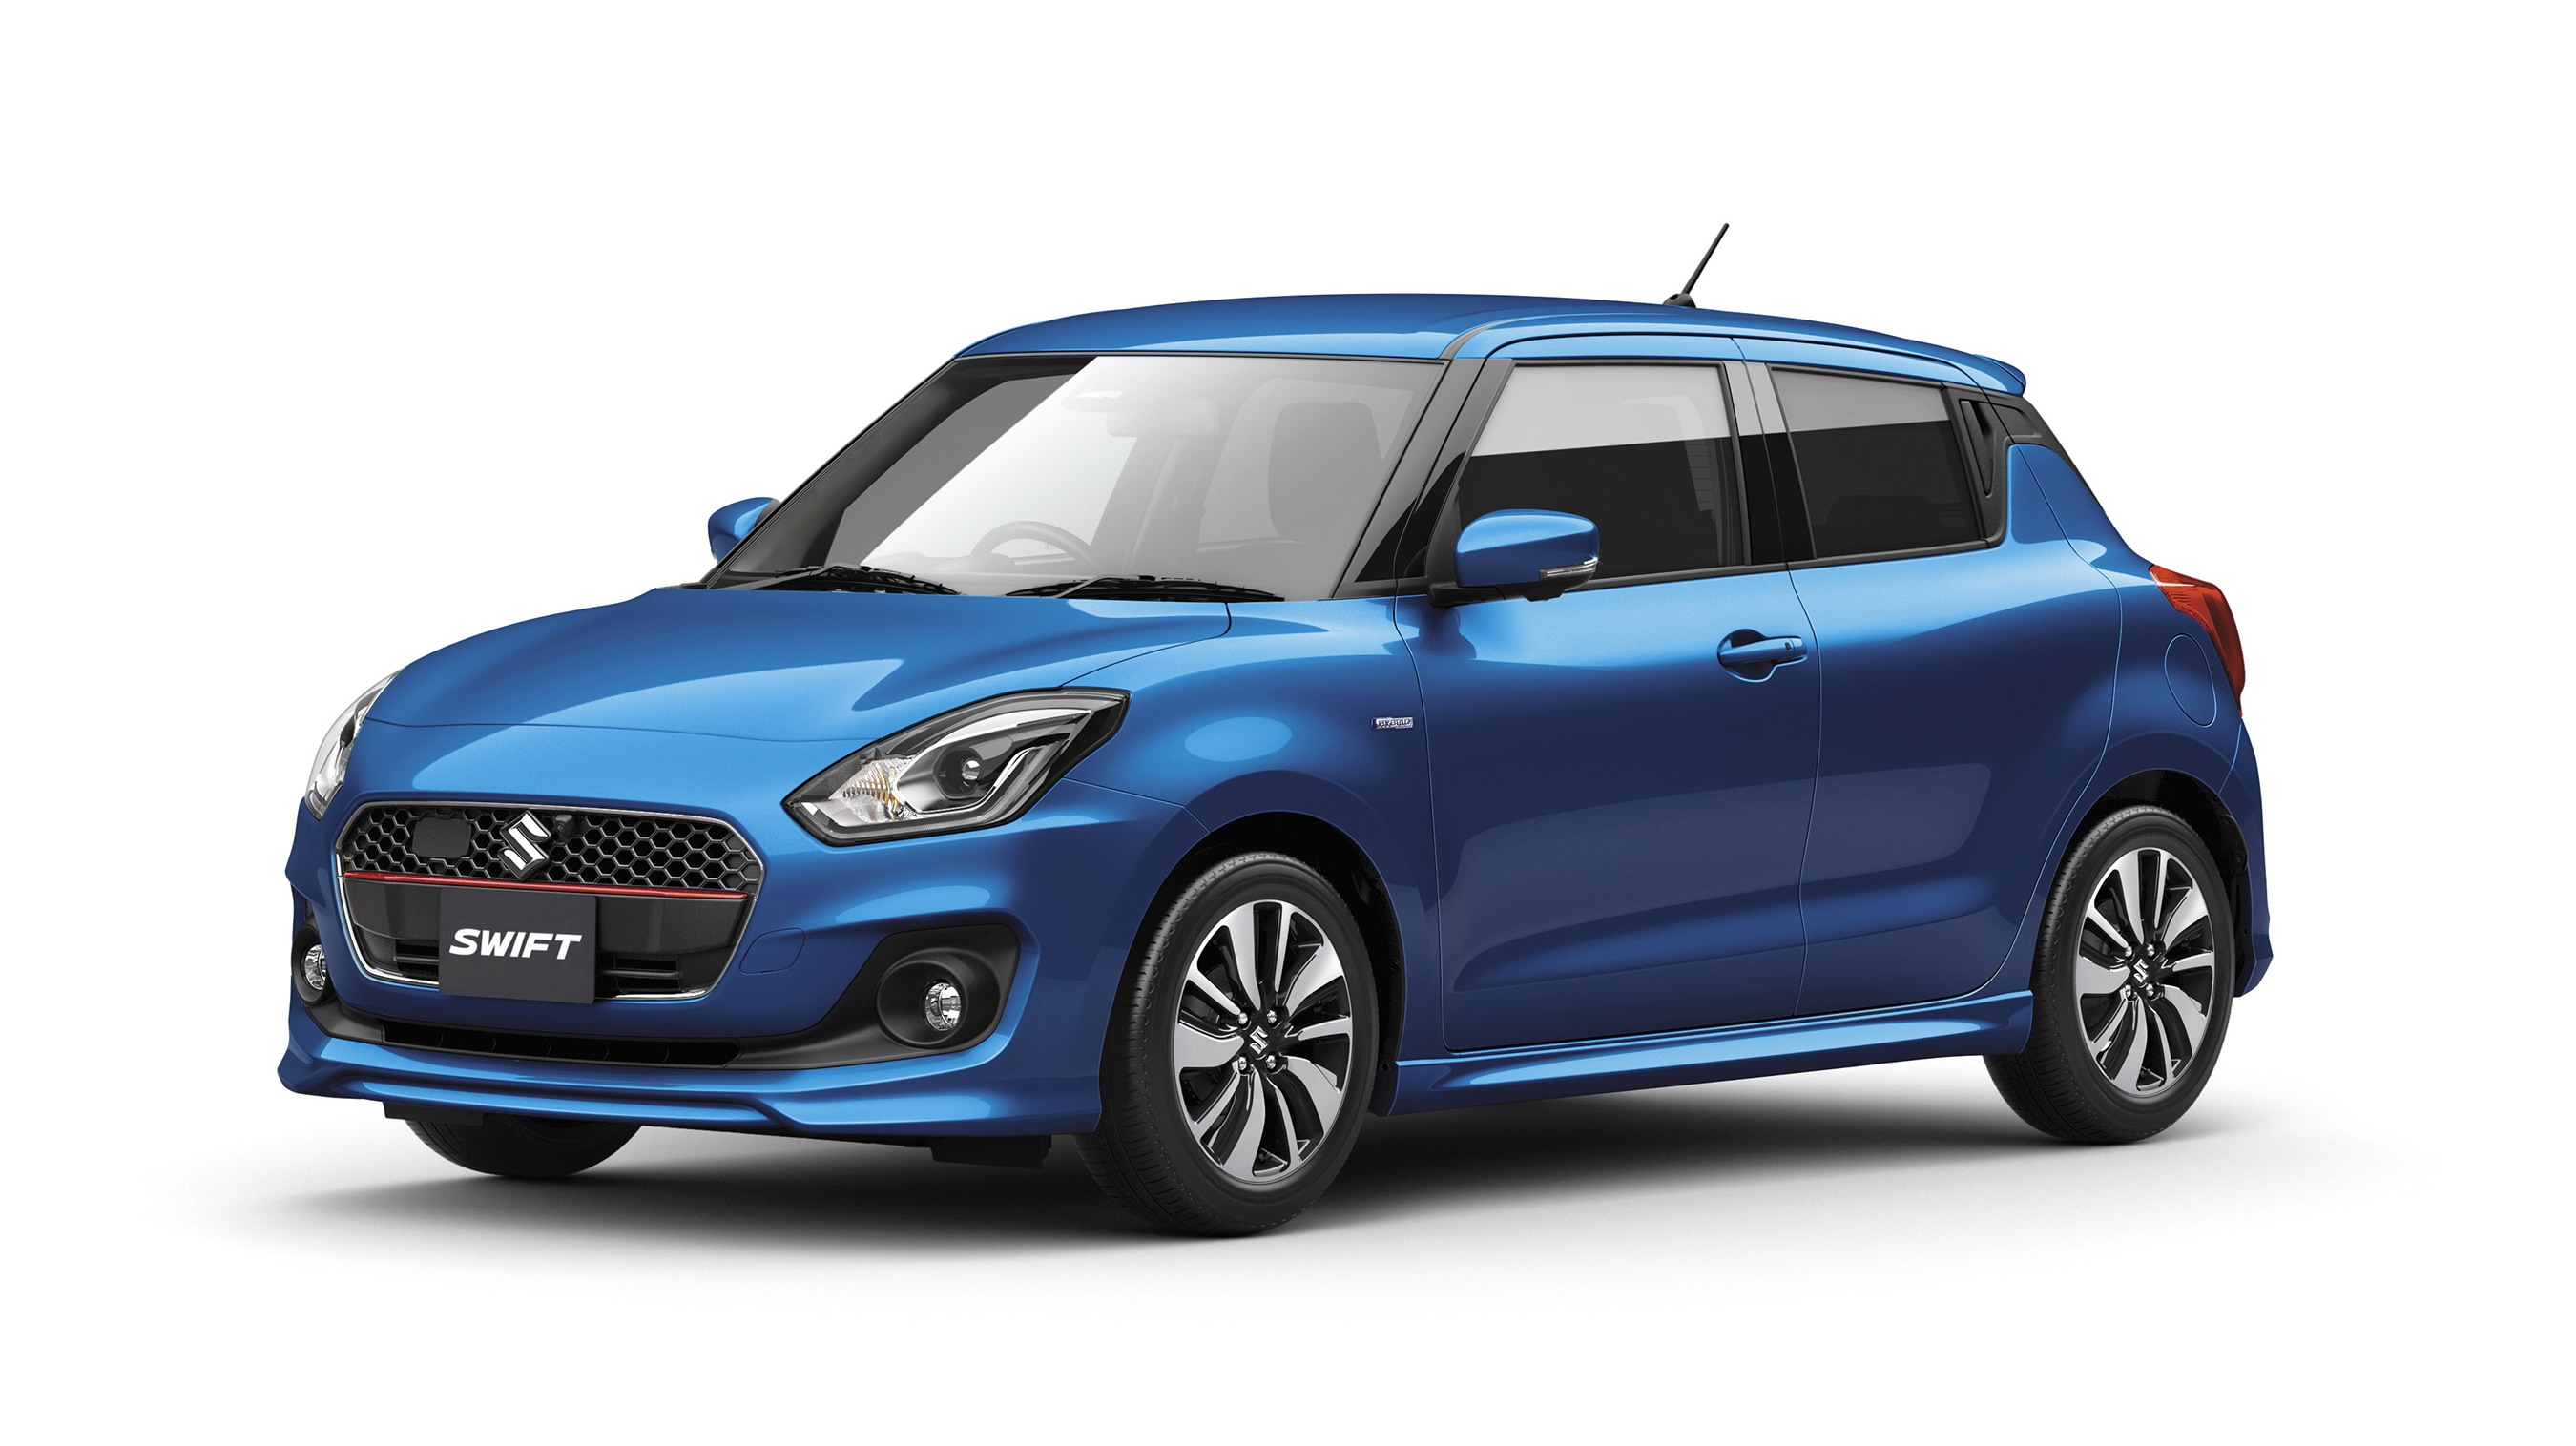 Suzuki Swift News And Reviews